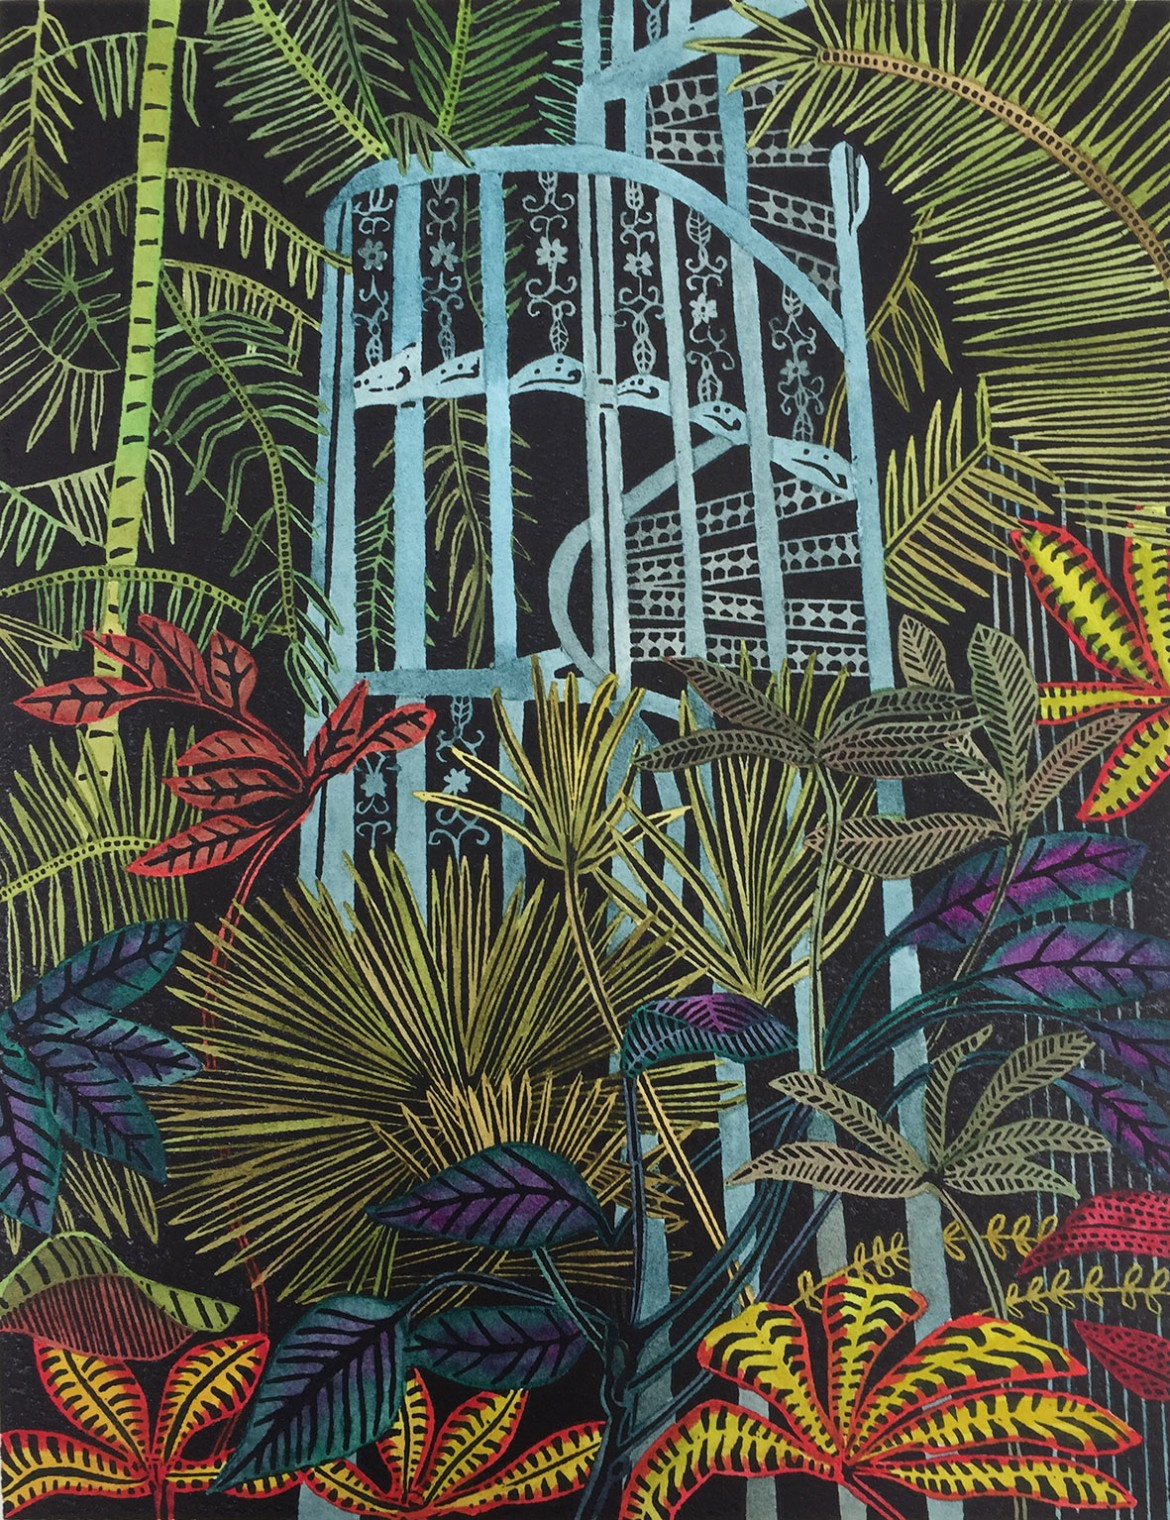 H A TAYLOR Greenhouse Earth woodcut 2 53 x 40